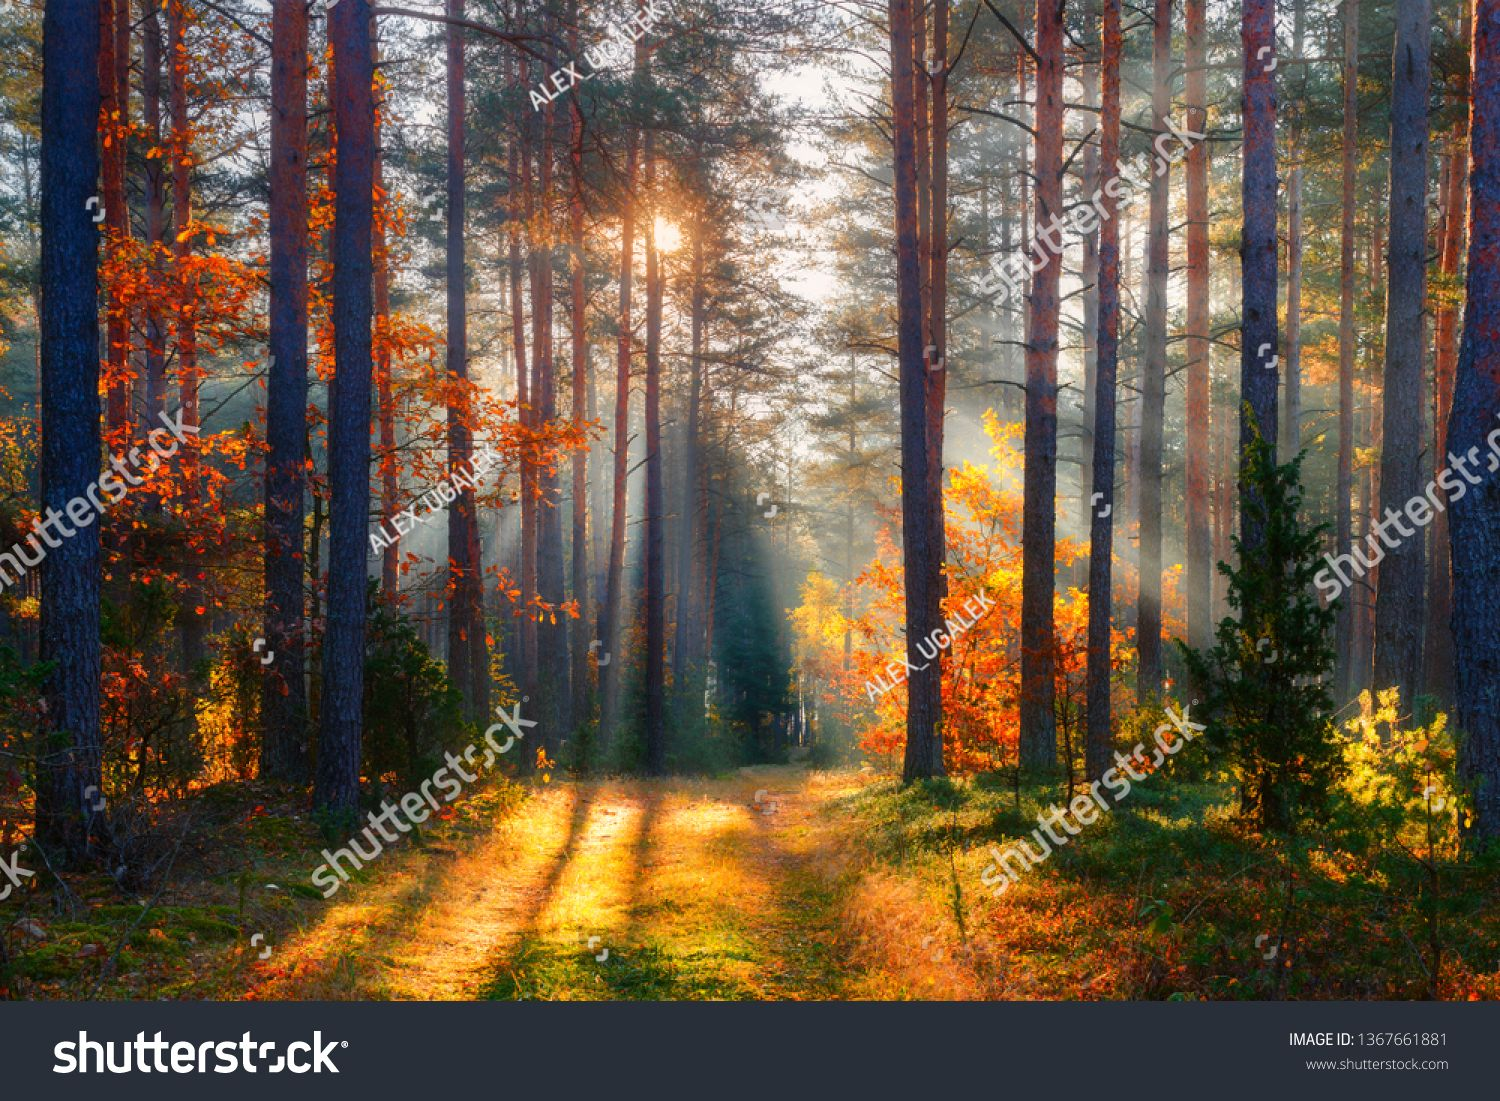 Fall Fall Forest Forest Landscape Autumn Nature Sunshine In Forest Sun Shines Through Trees Path In Natural Park Forest Landscape Autumn Nature Landscape